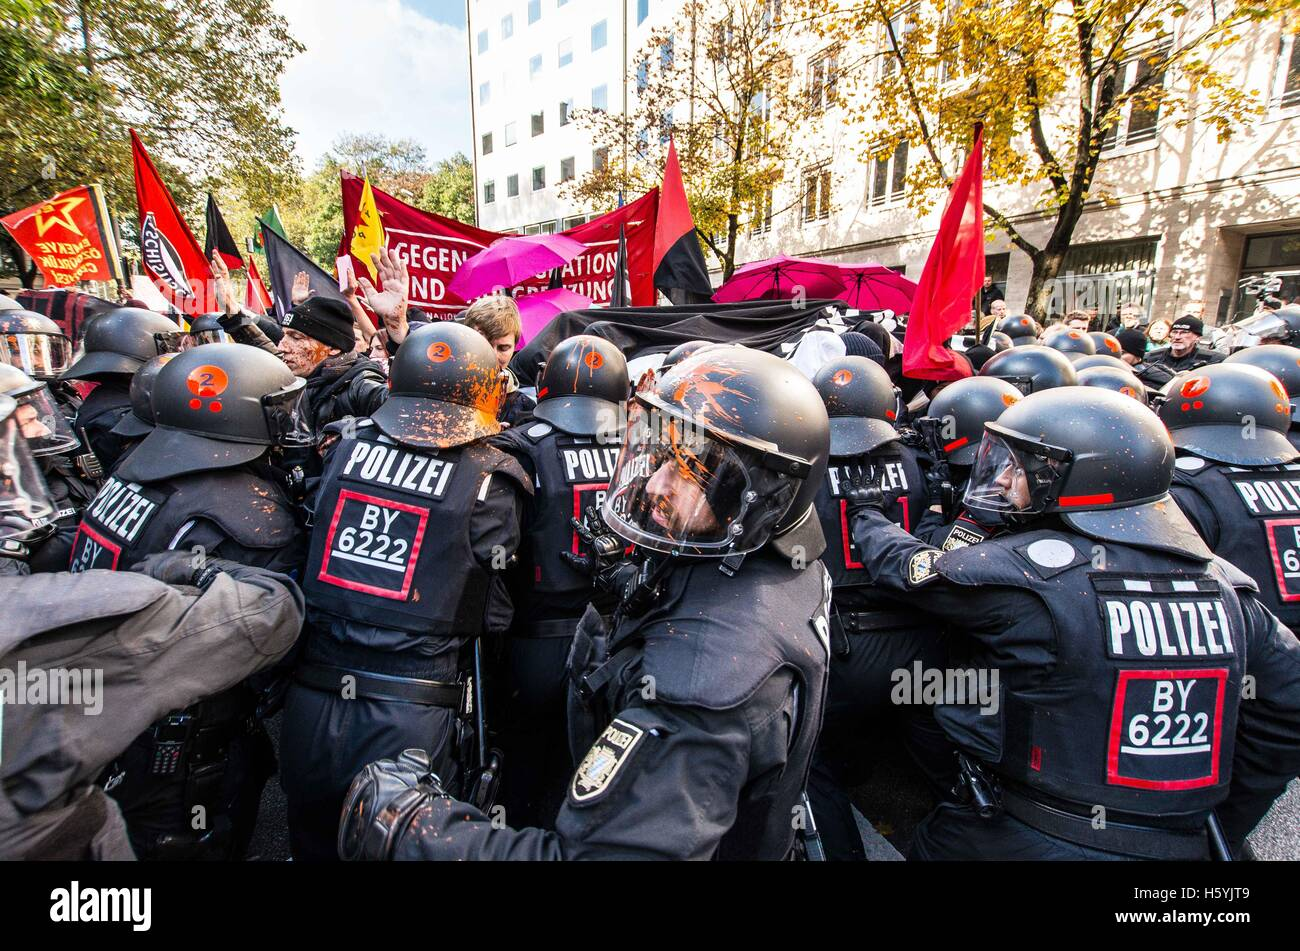 October 22, 2016 - Munich, Germany- Police push back protesters. 1,800 Residents, students, and labor unions in - Stock Image